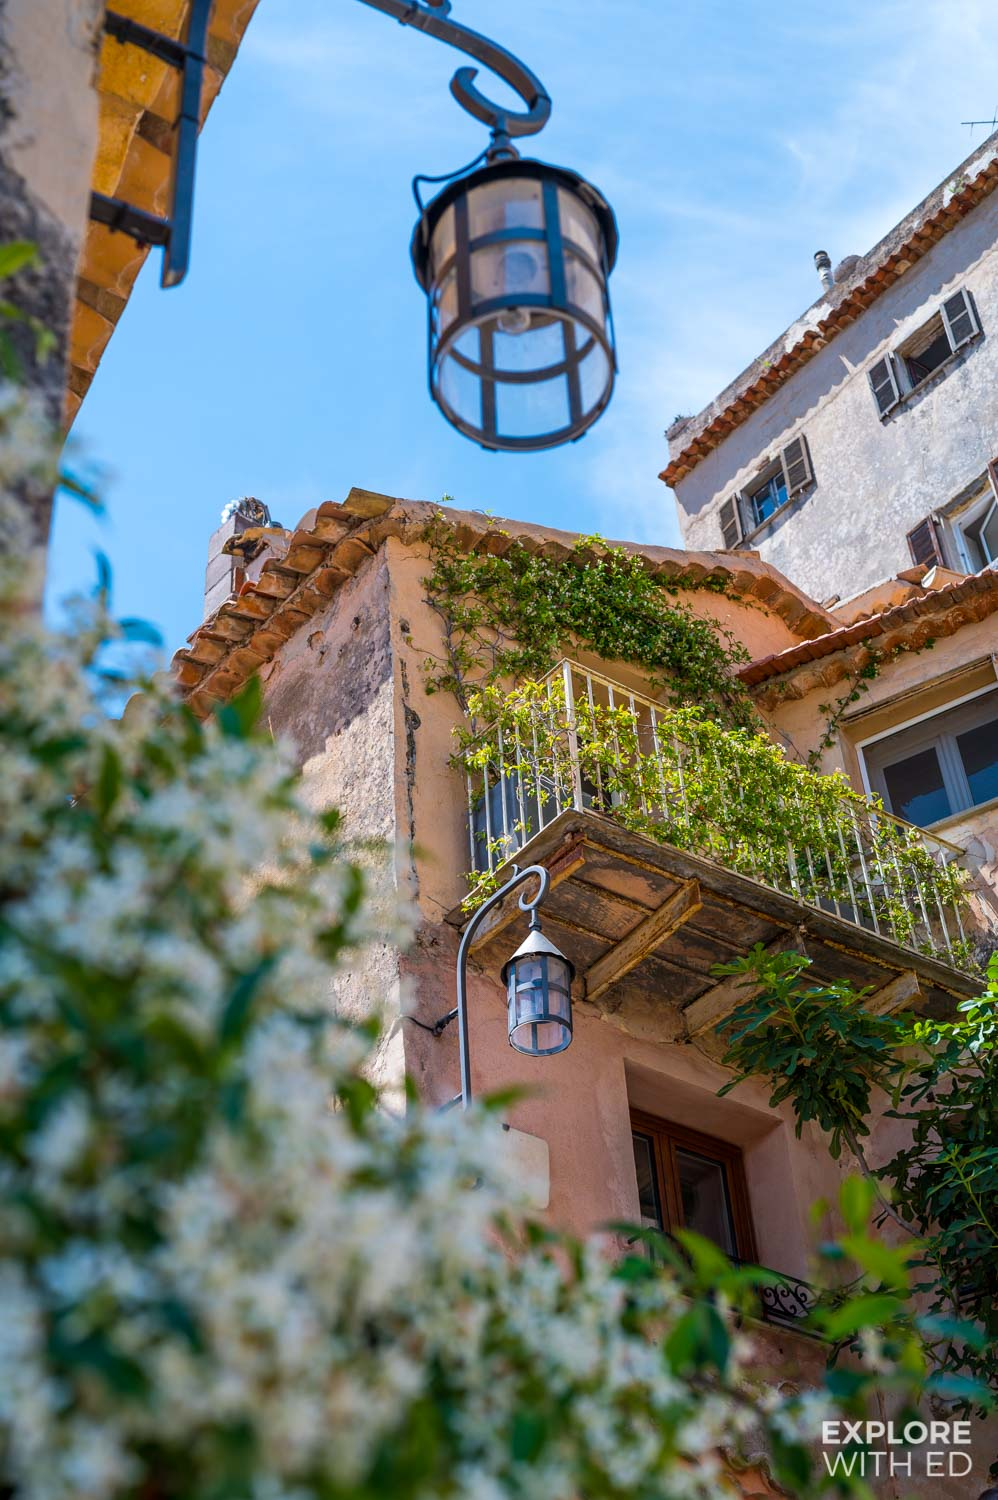 The historic medieval character of Eze Village